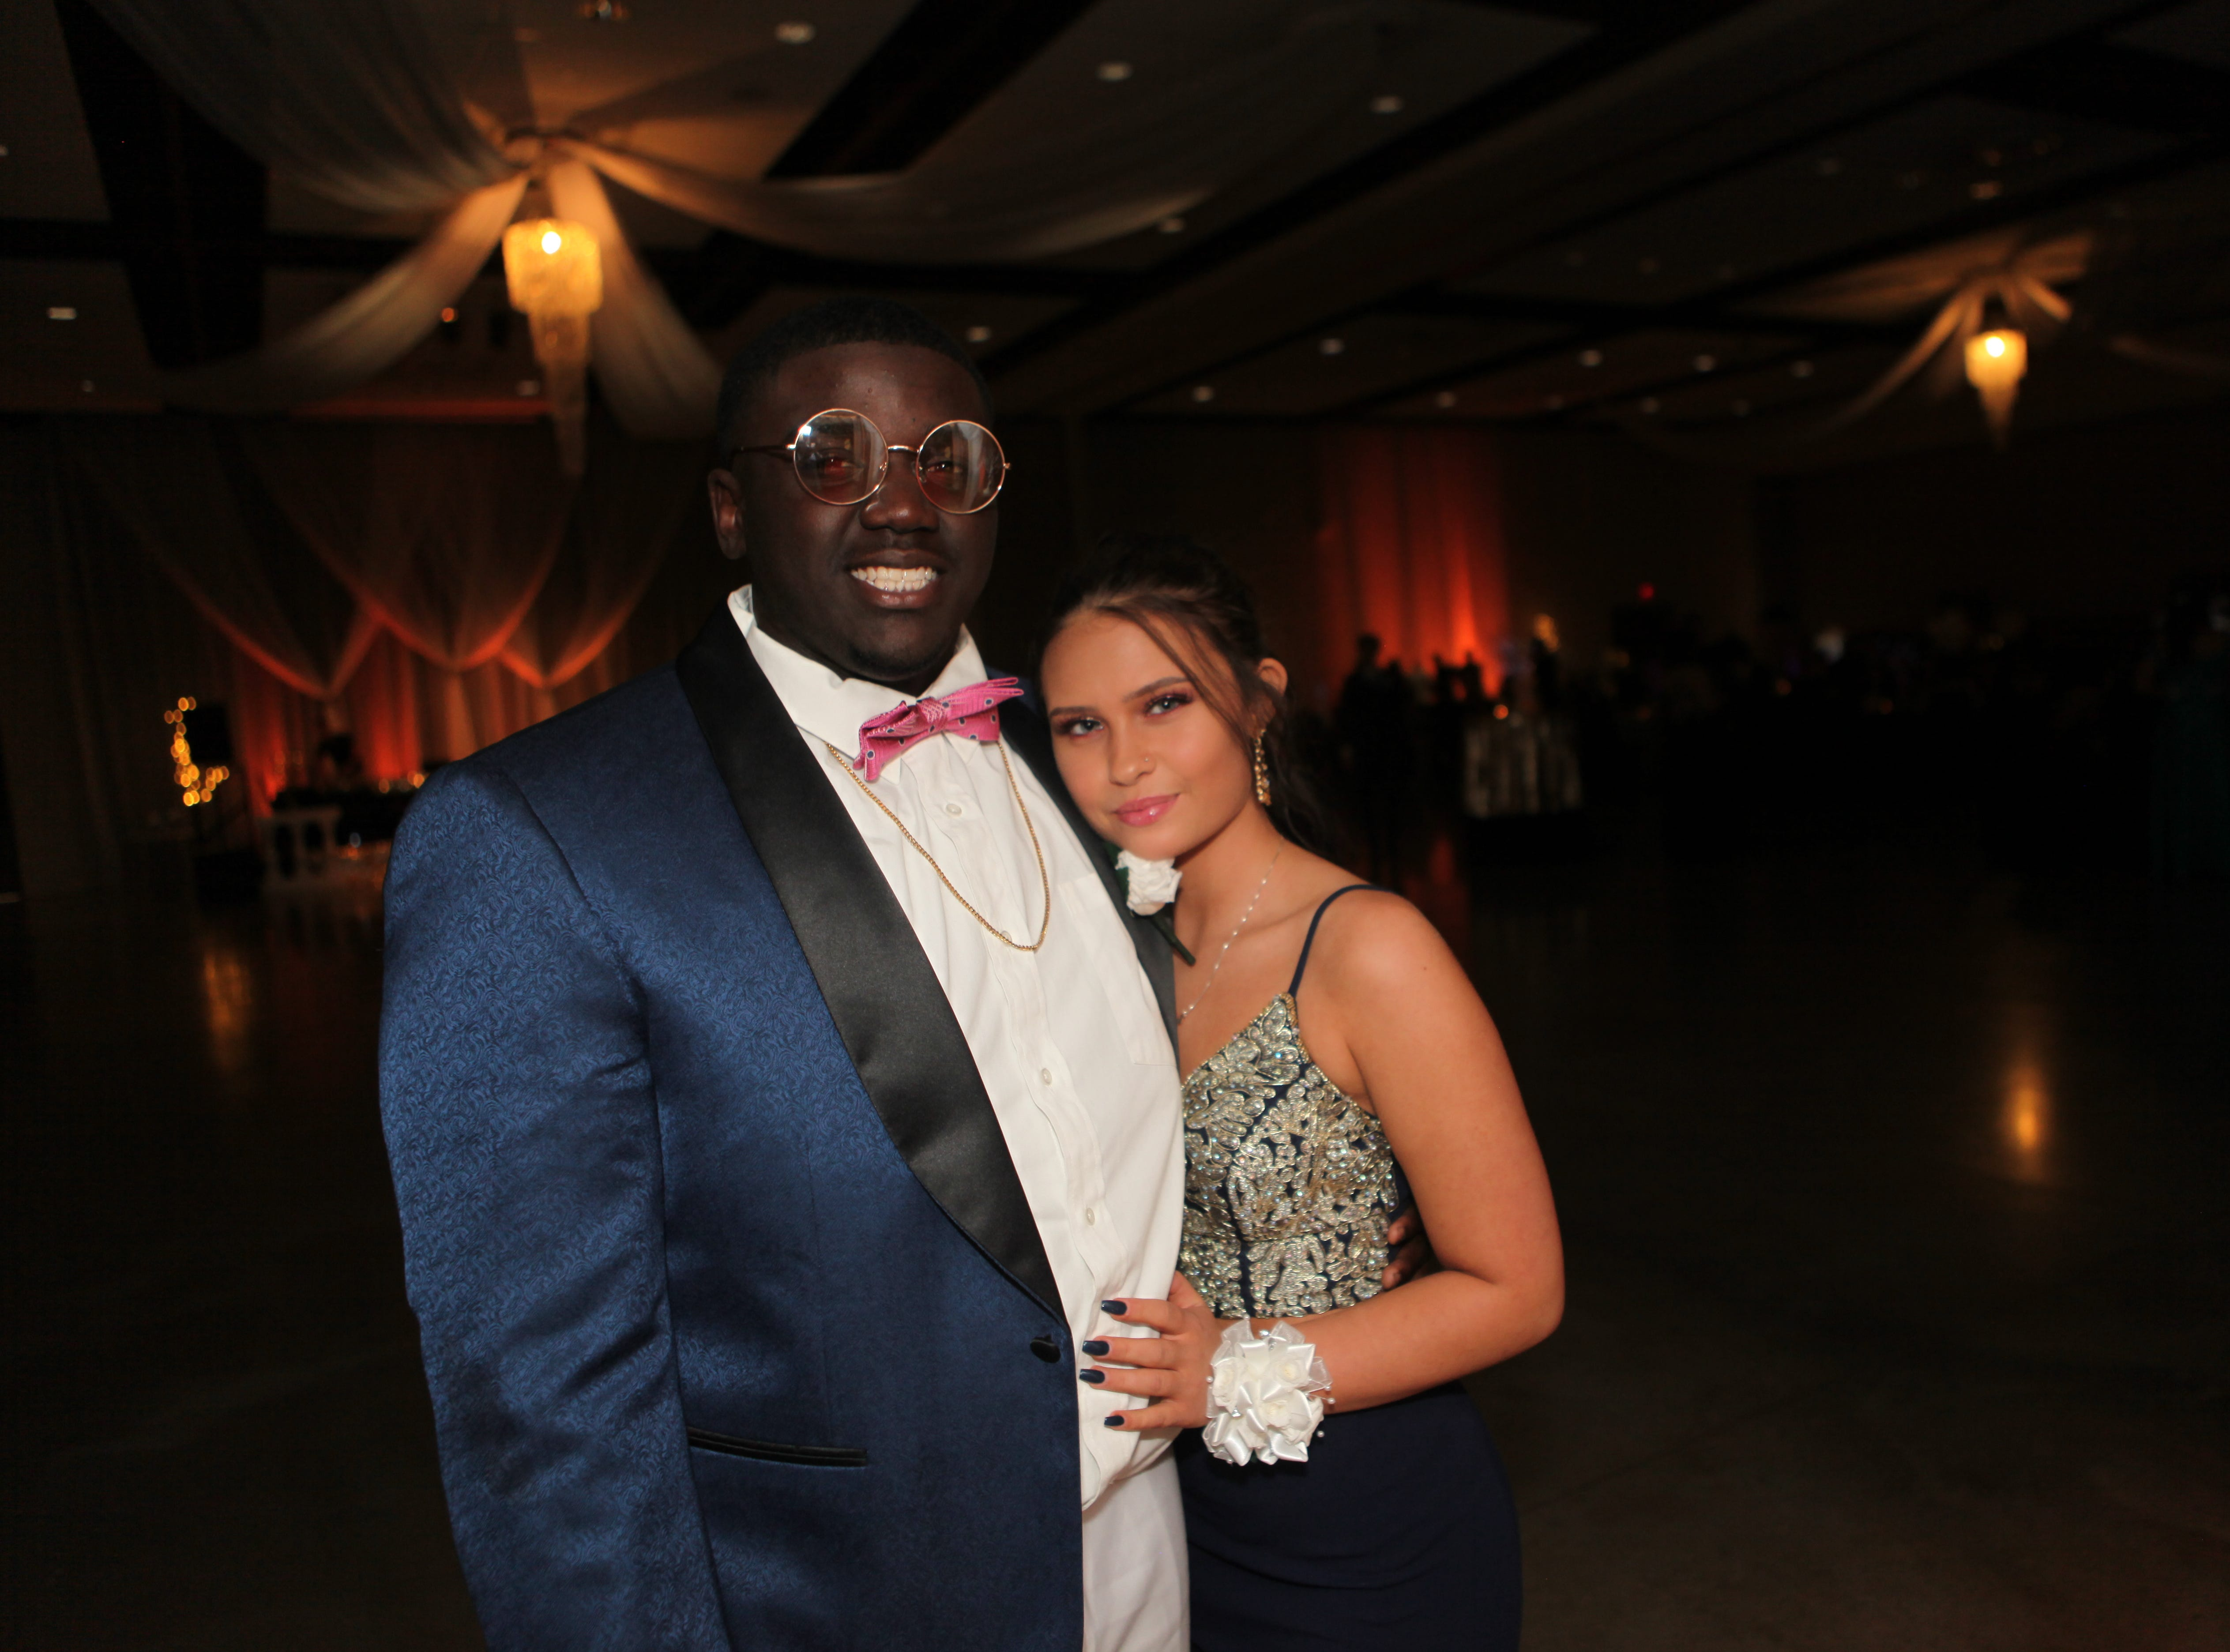 West Creek High School held Prom 2019 on Saturday, May 4, 2019.